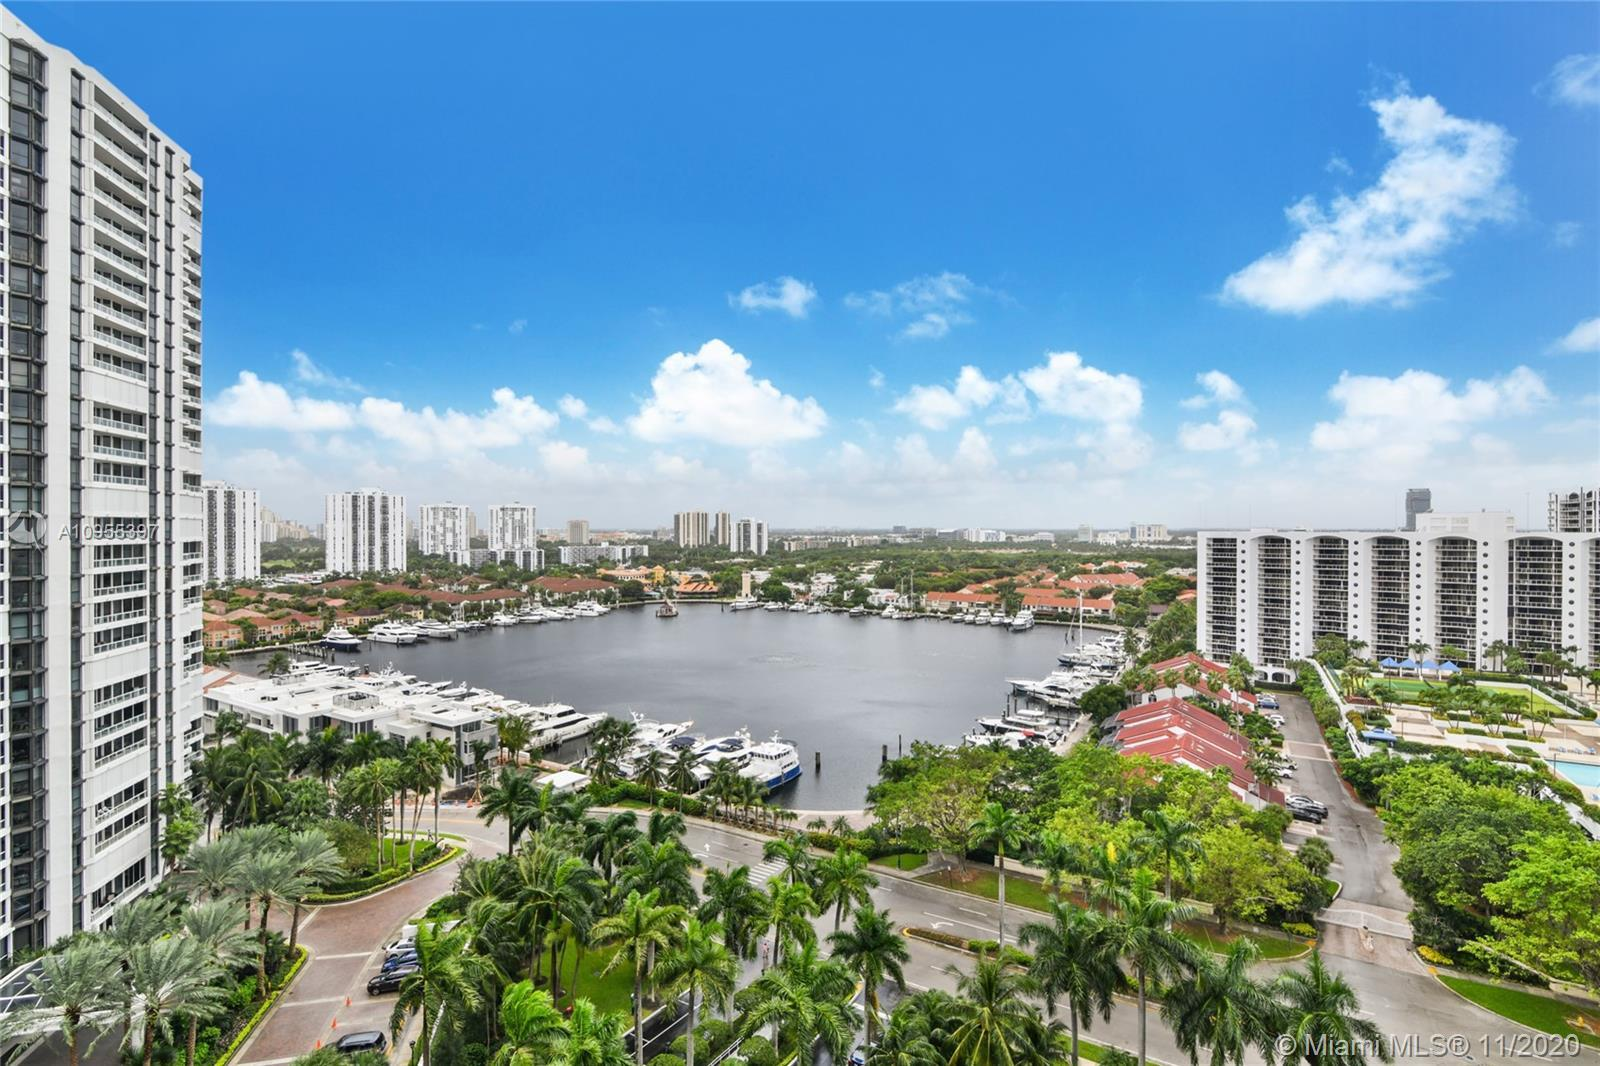 Priced to sell. 